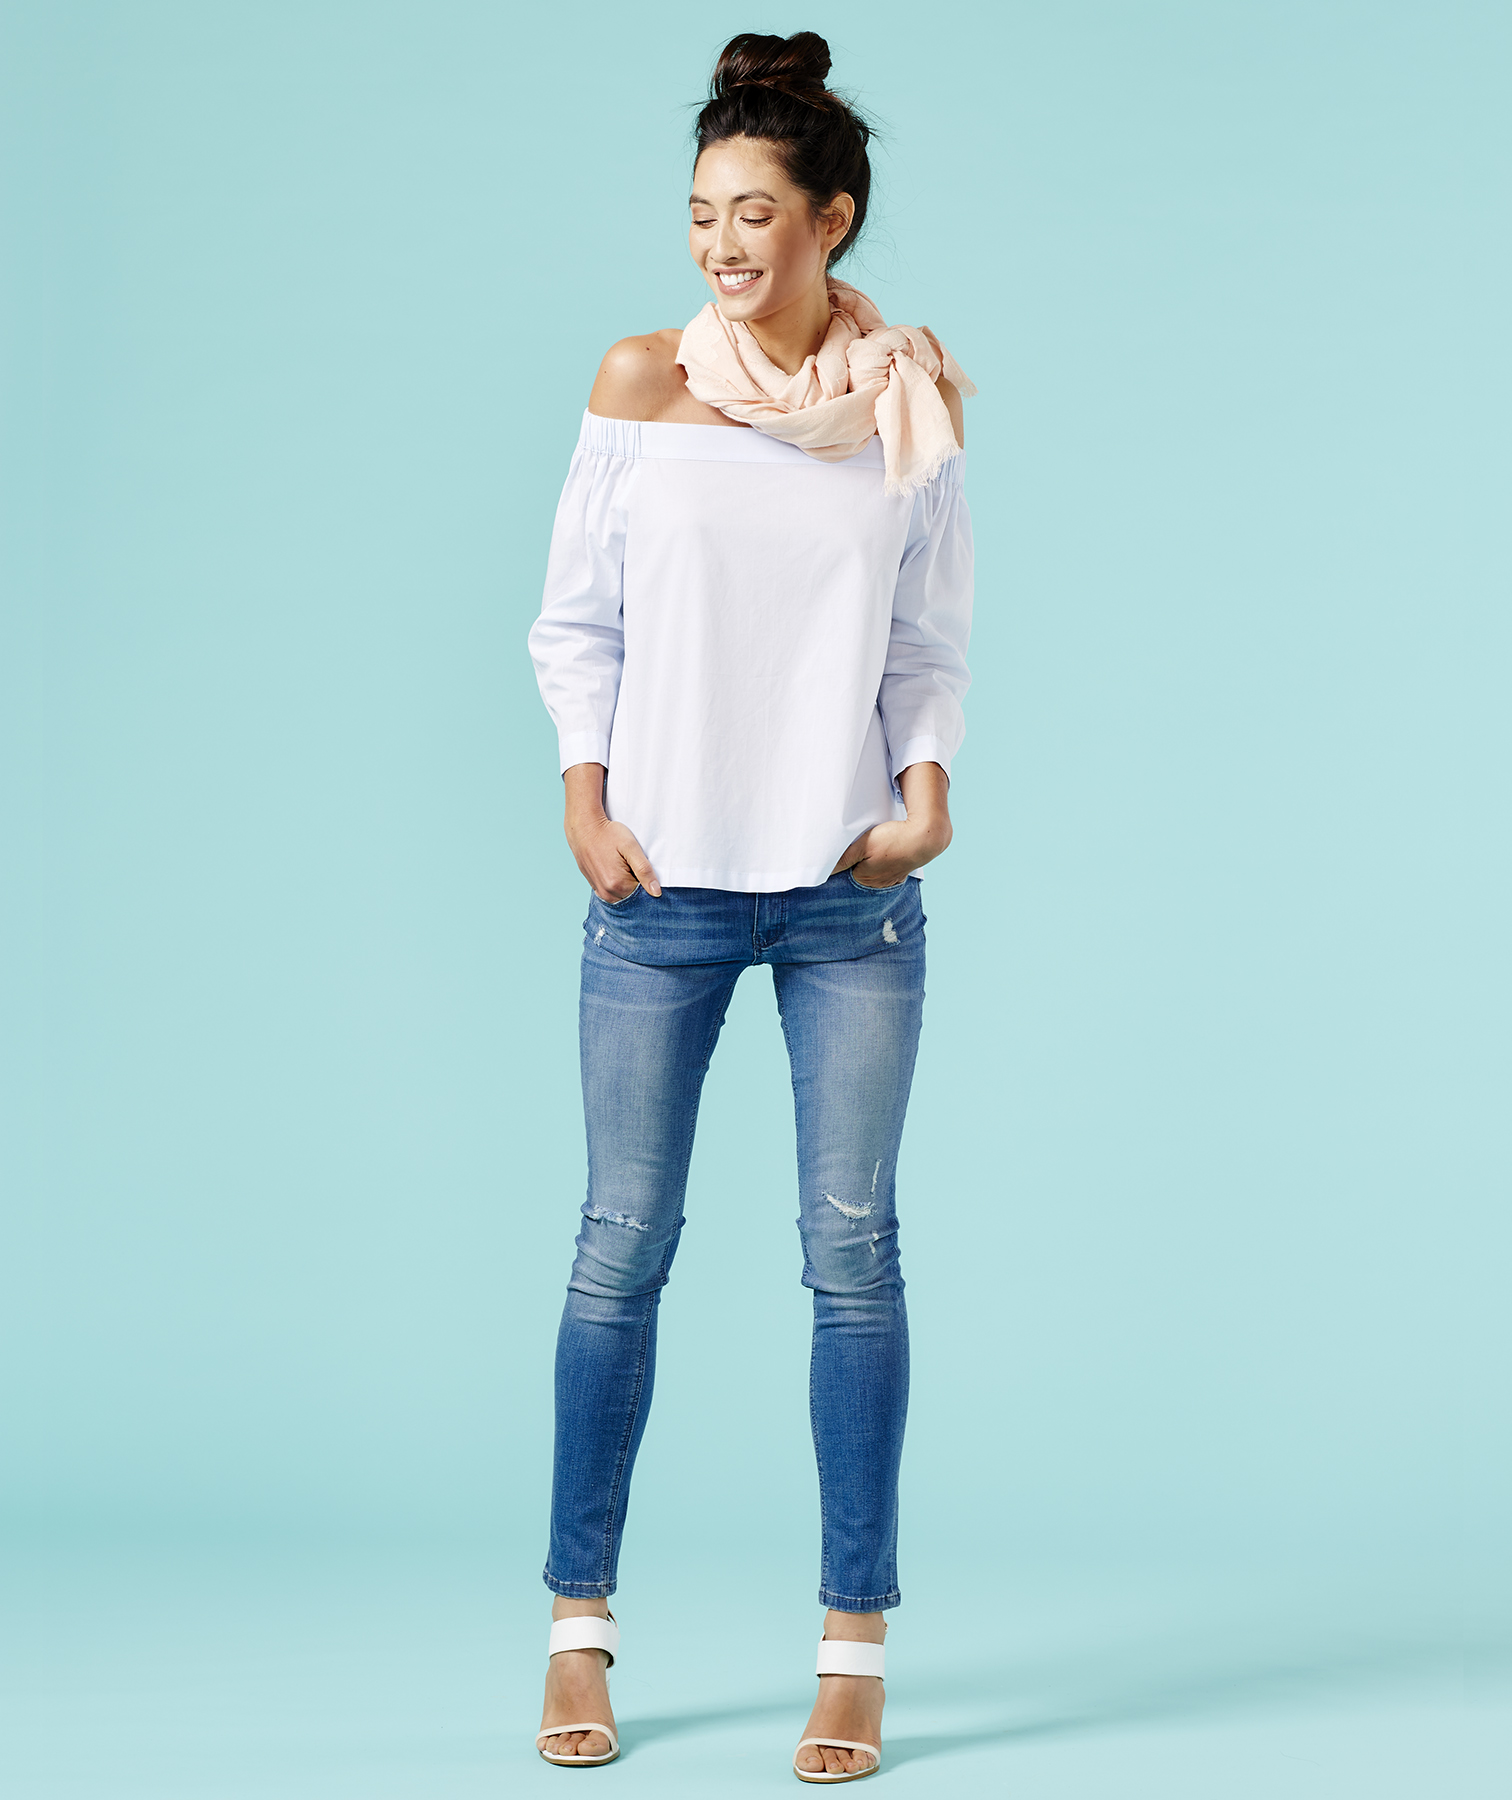 Outfit with off-the-shoulder top and jeans